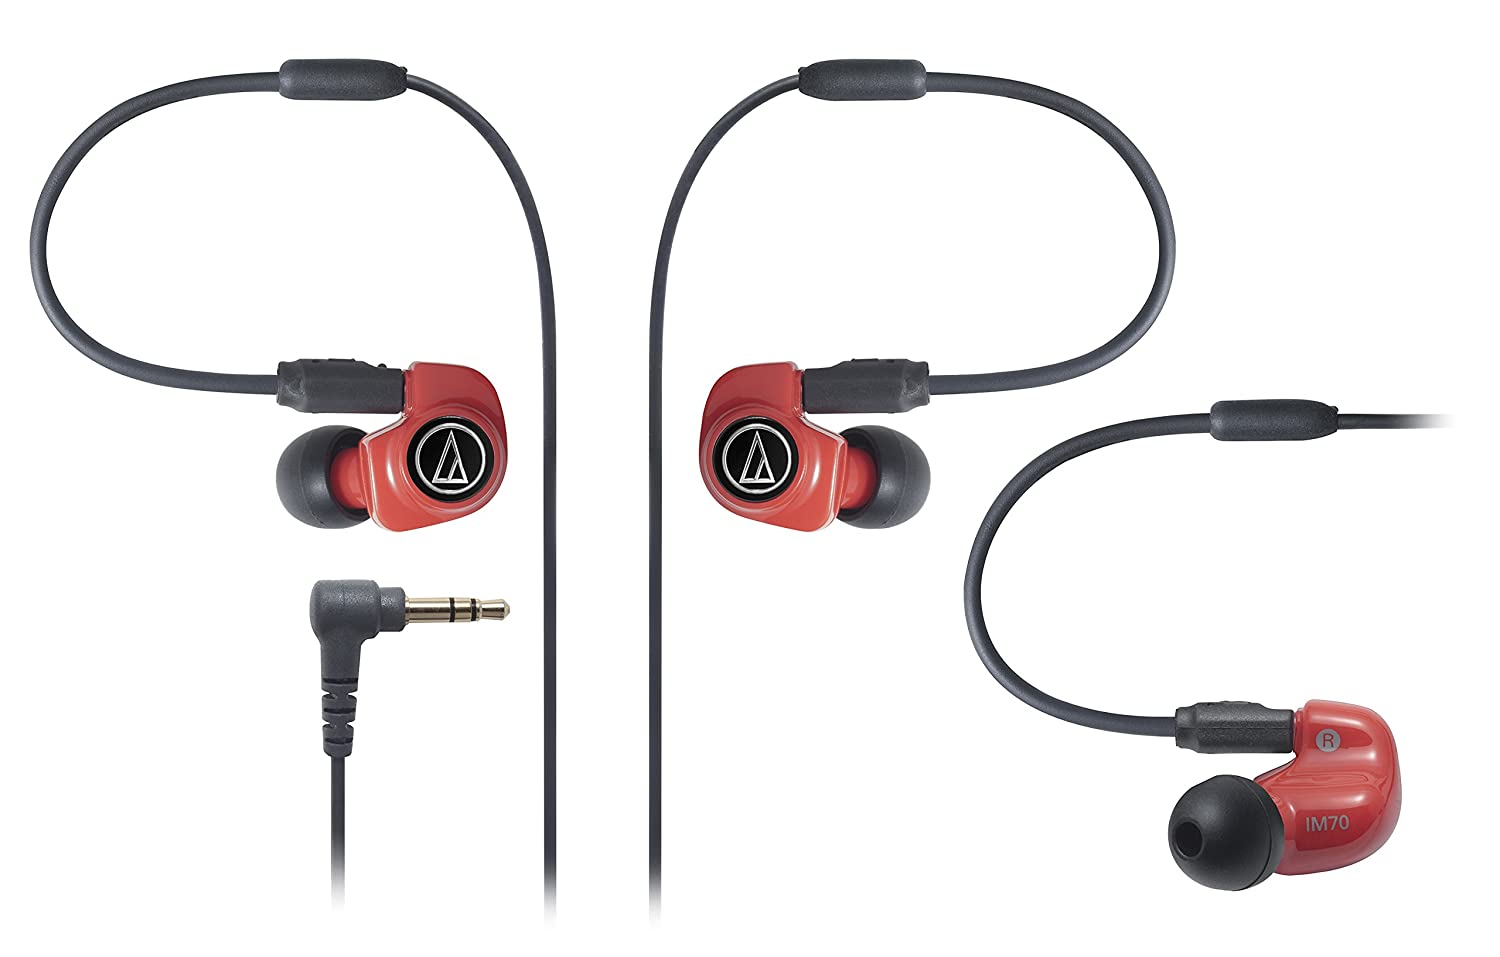 Audio-Technica ATH-IM70 Dual symphonic-driver In-ear Monitor (Japan Import)